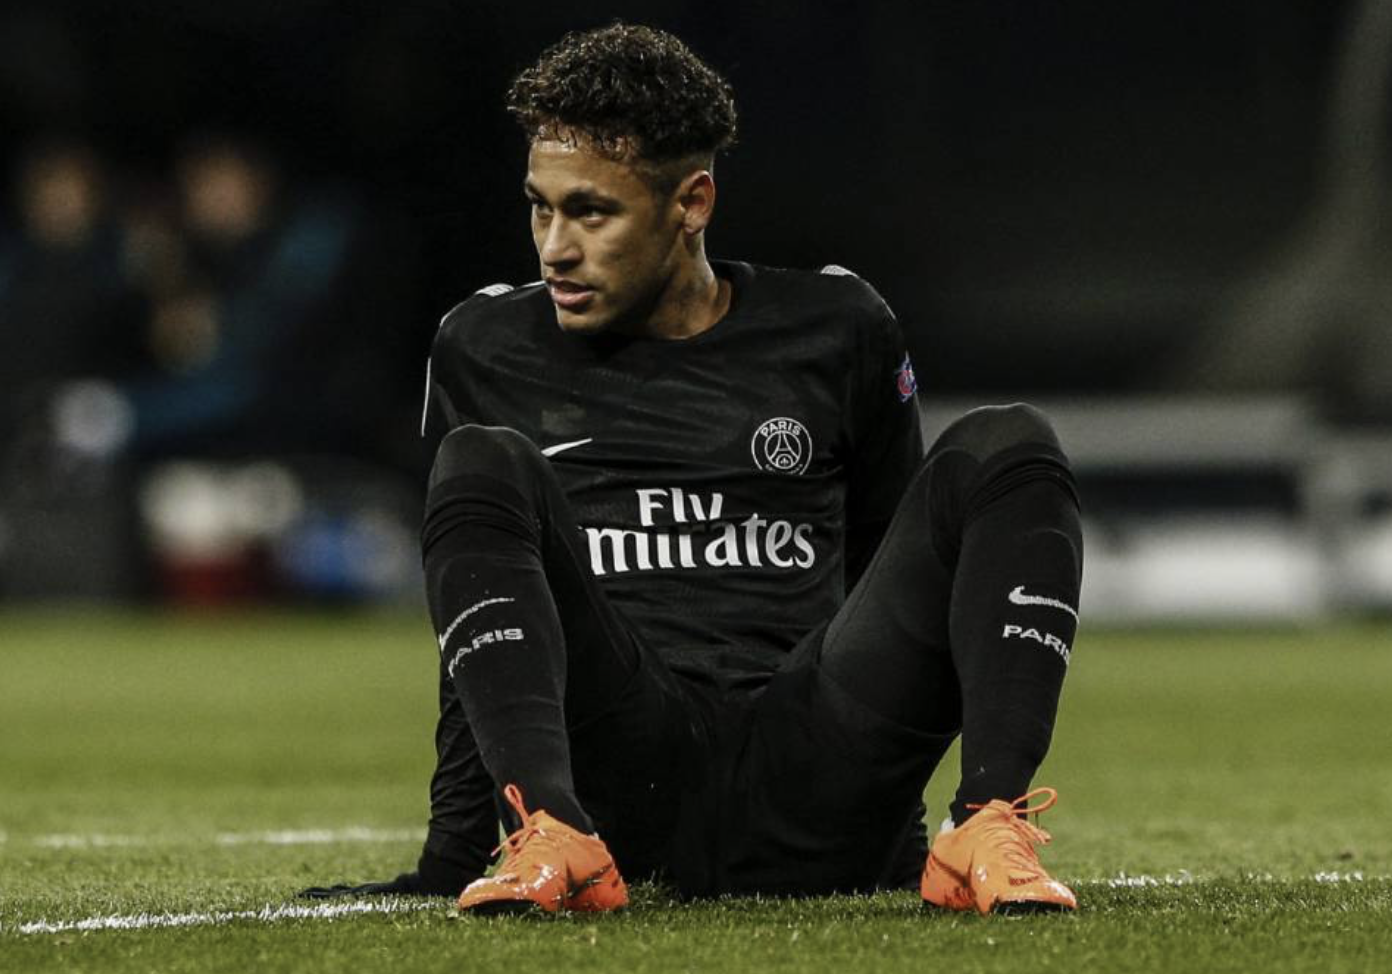 Neymar to PSG 10 - Loan exit for 27y/o could play into Barcelona's hands - opinion